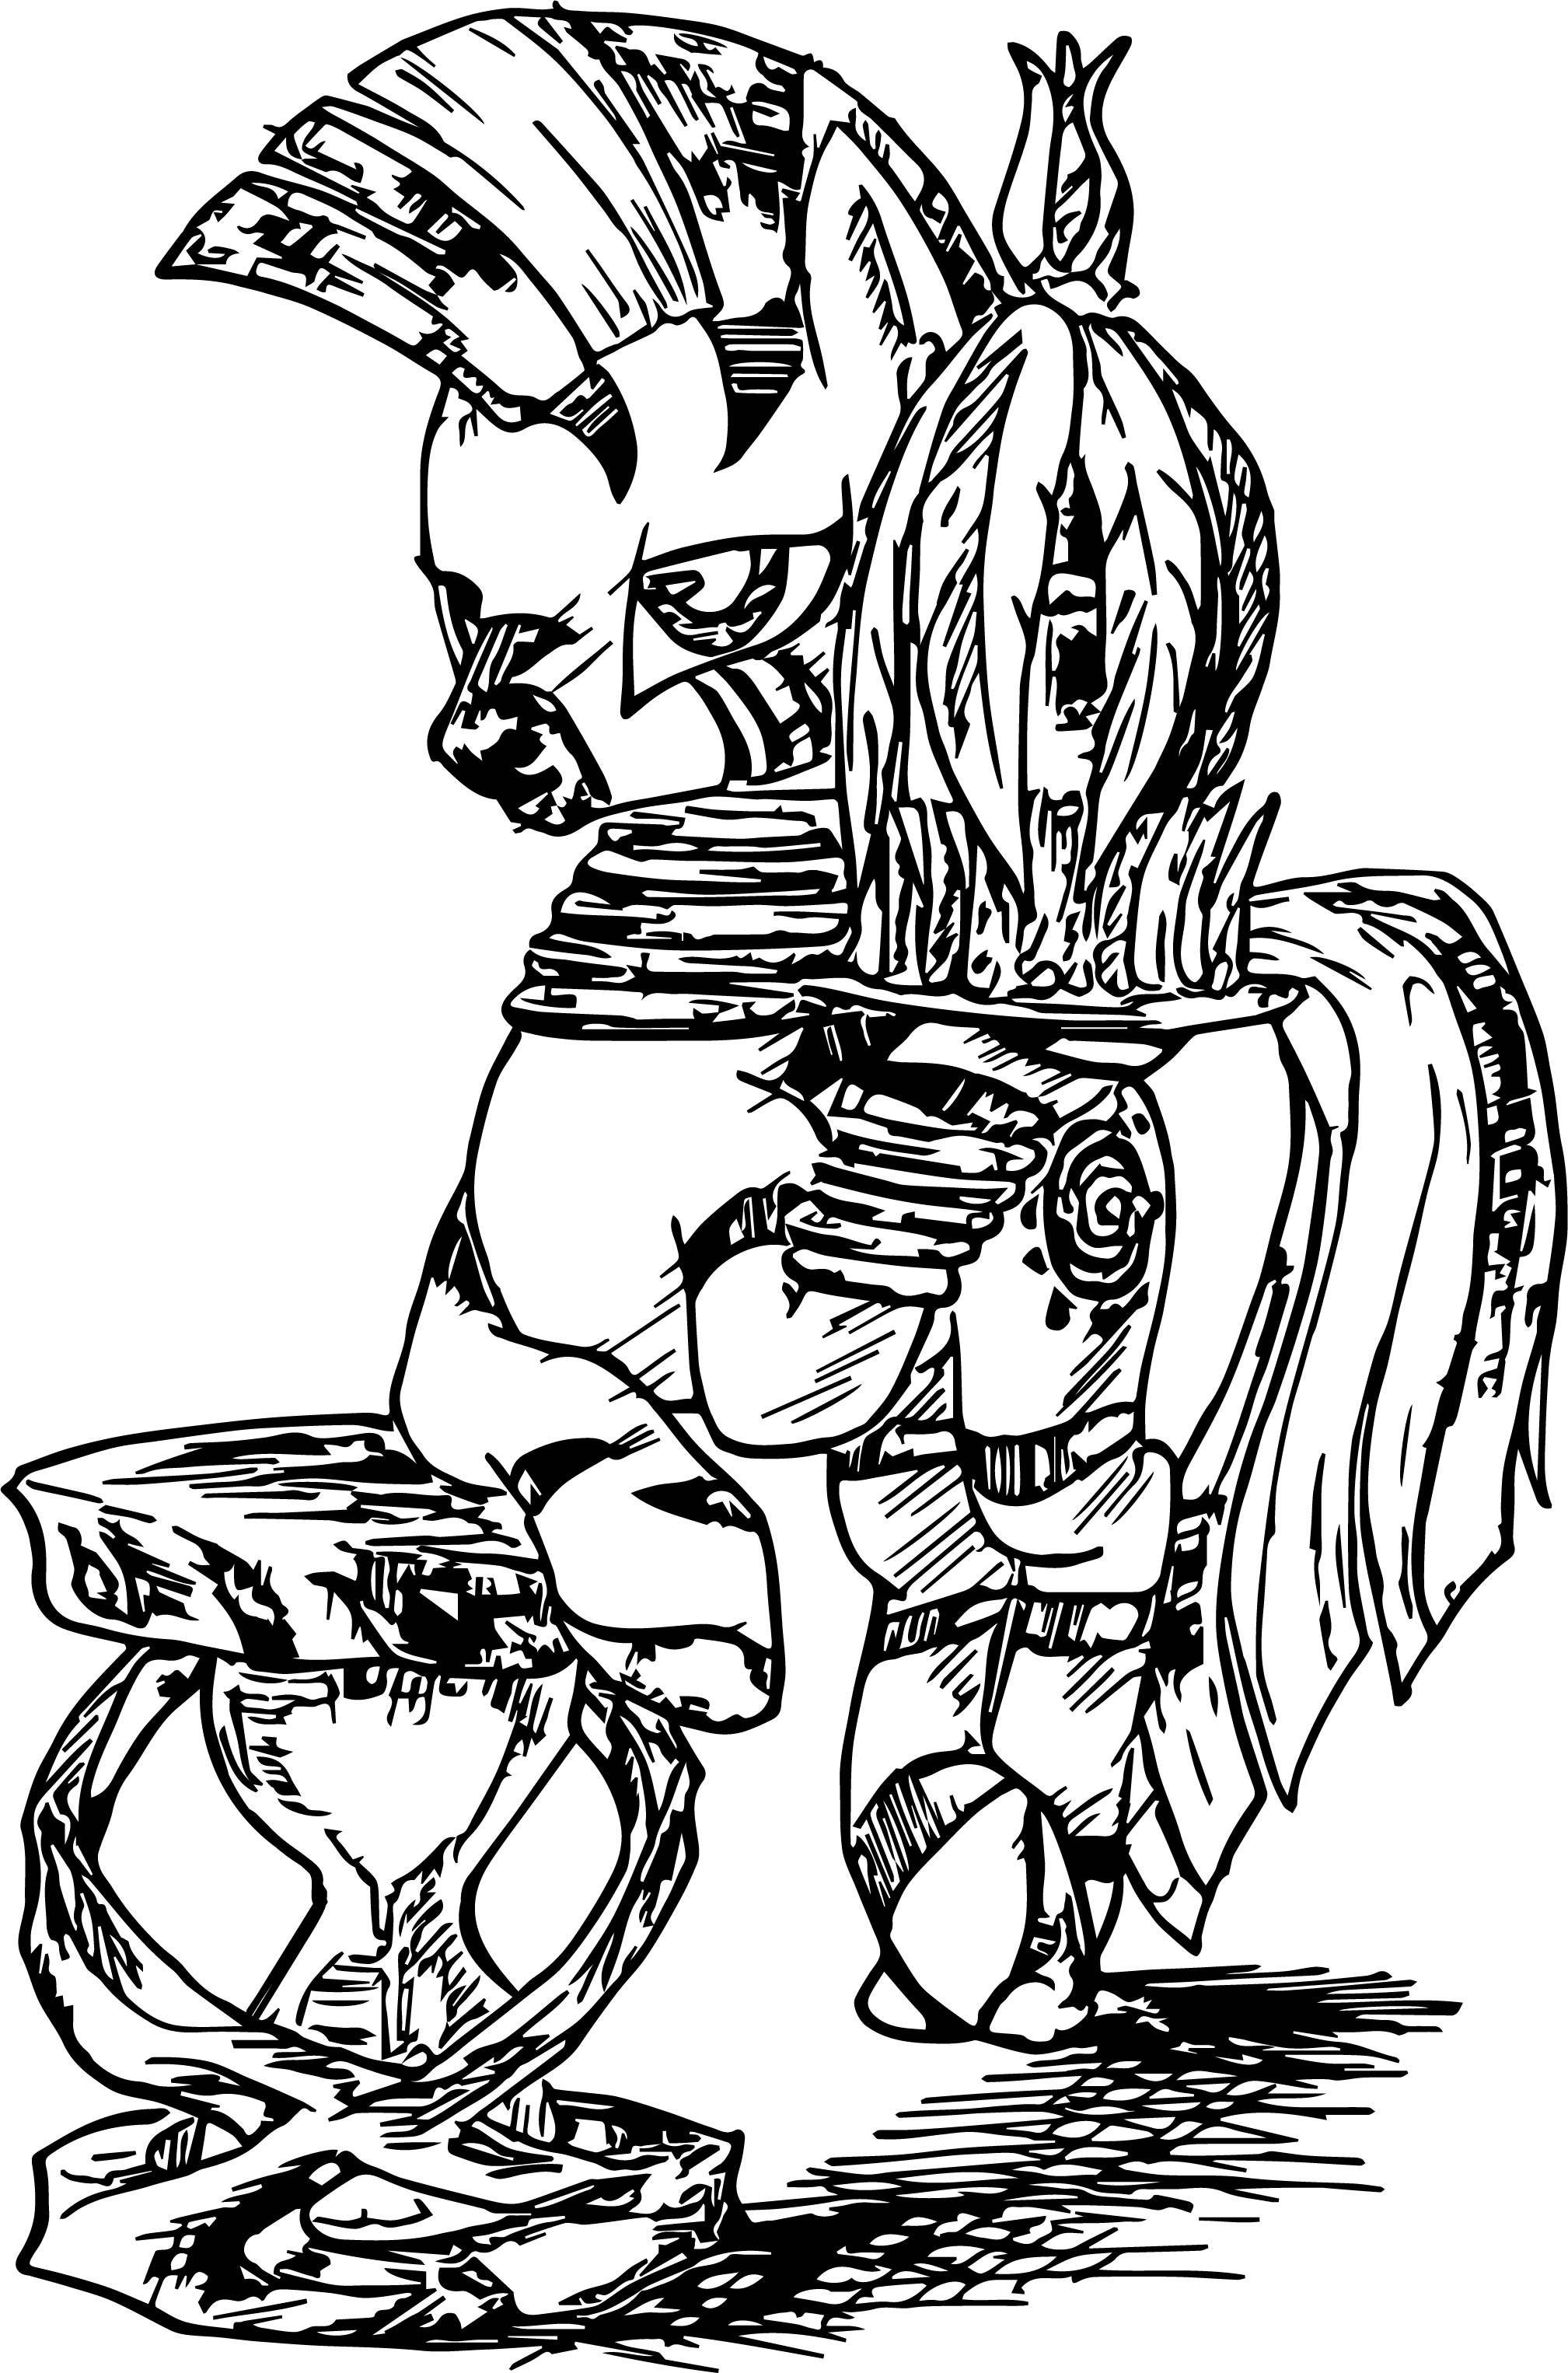 Zecora Sketch Coloring Page